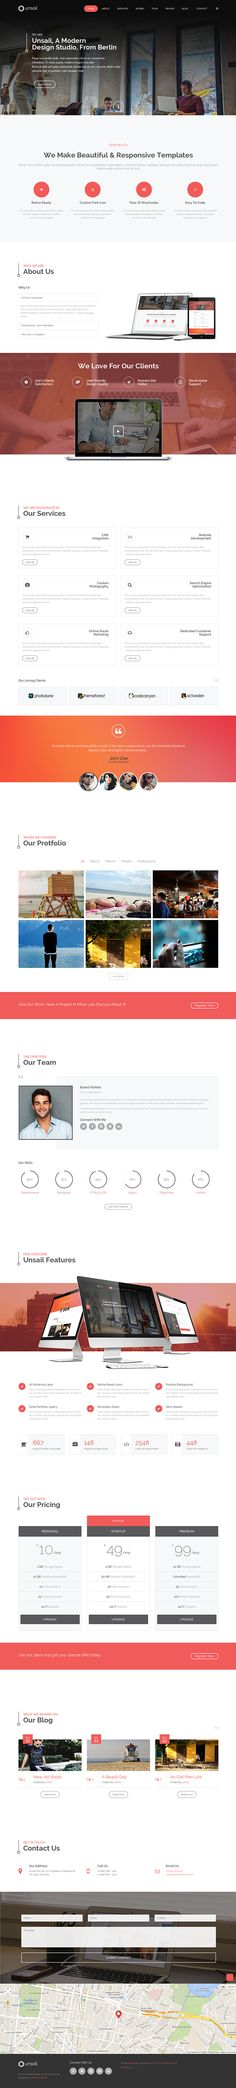 Unsail One Page WordPress Parallax Theme on Behance